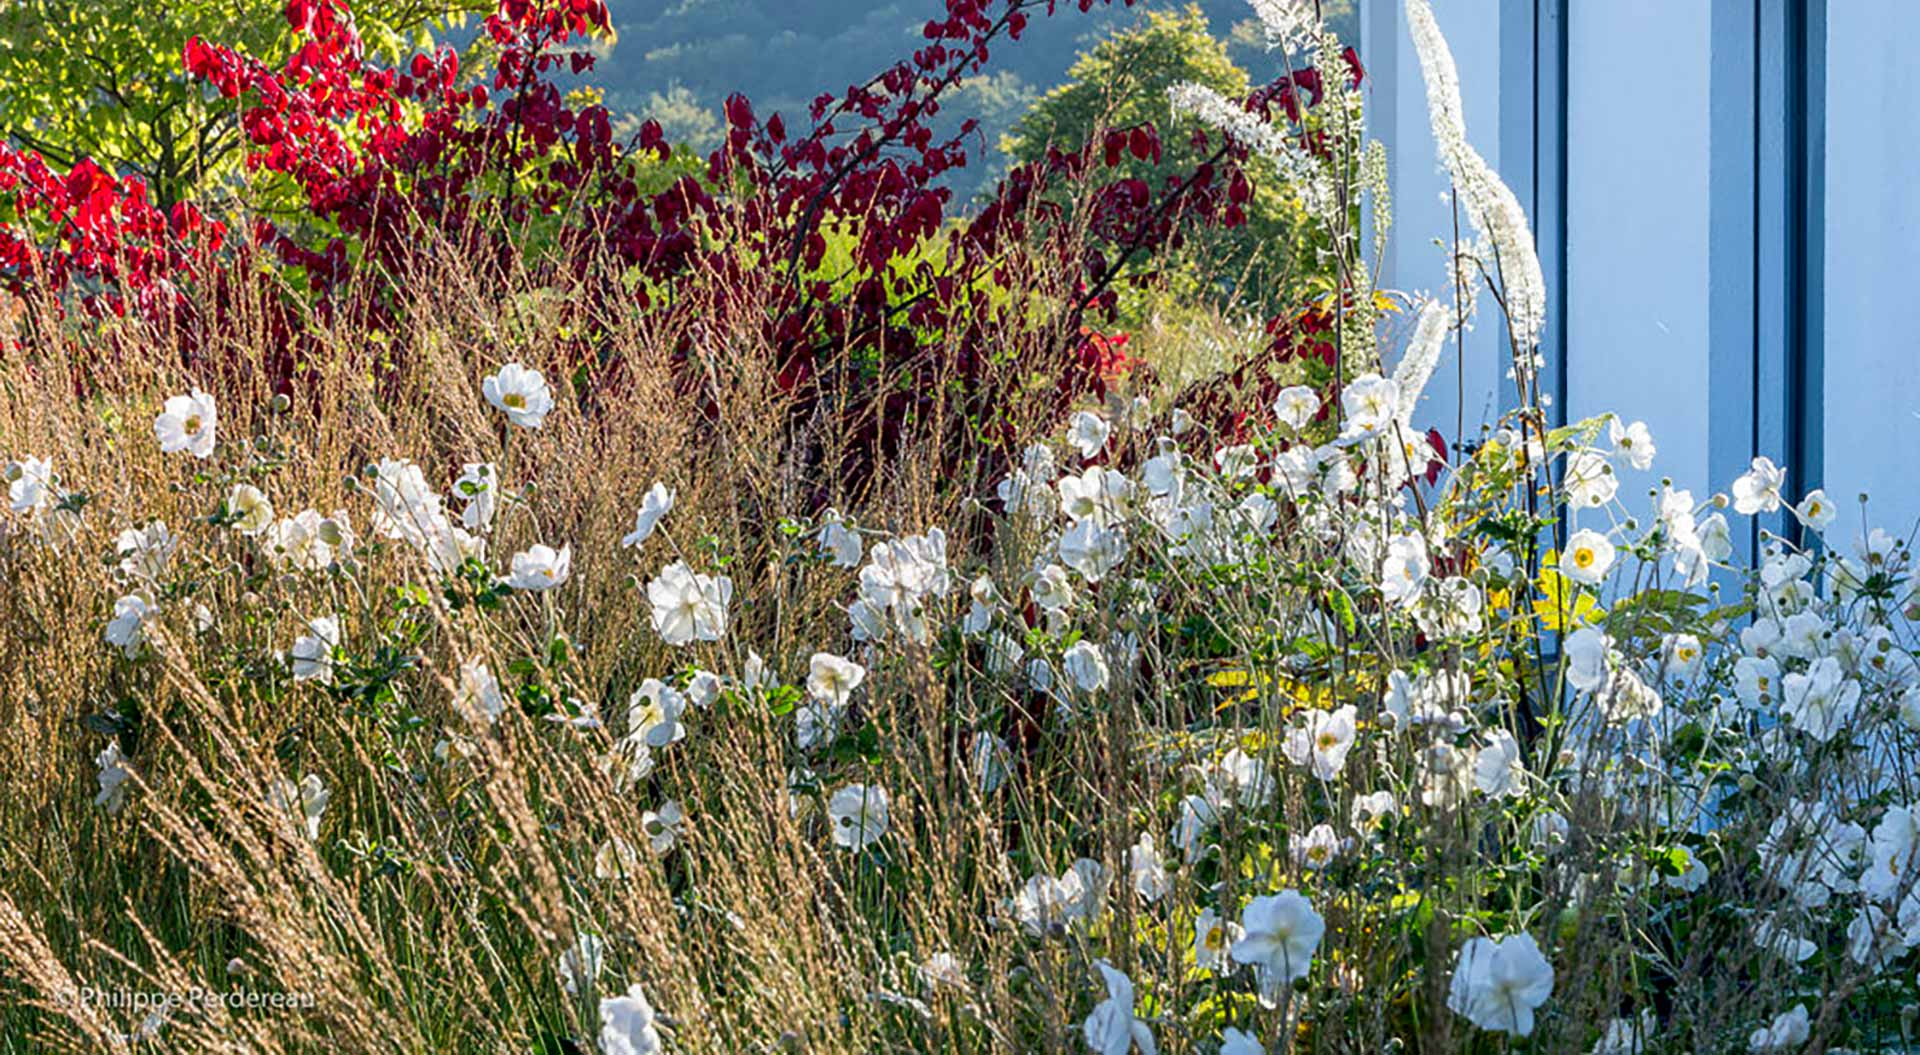 White and red flowers combined with grasses